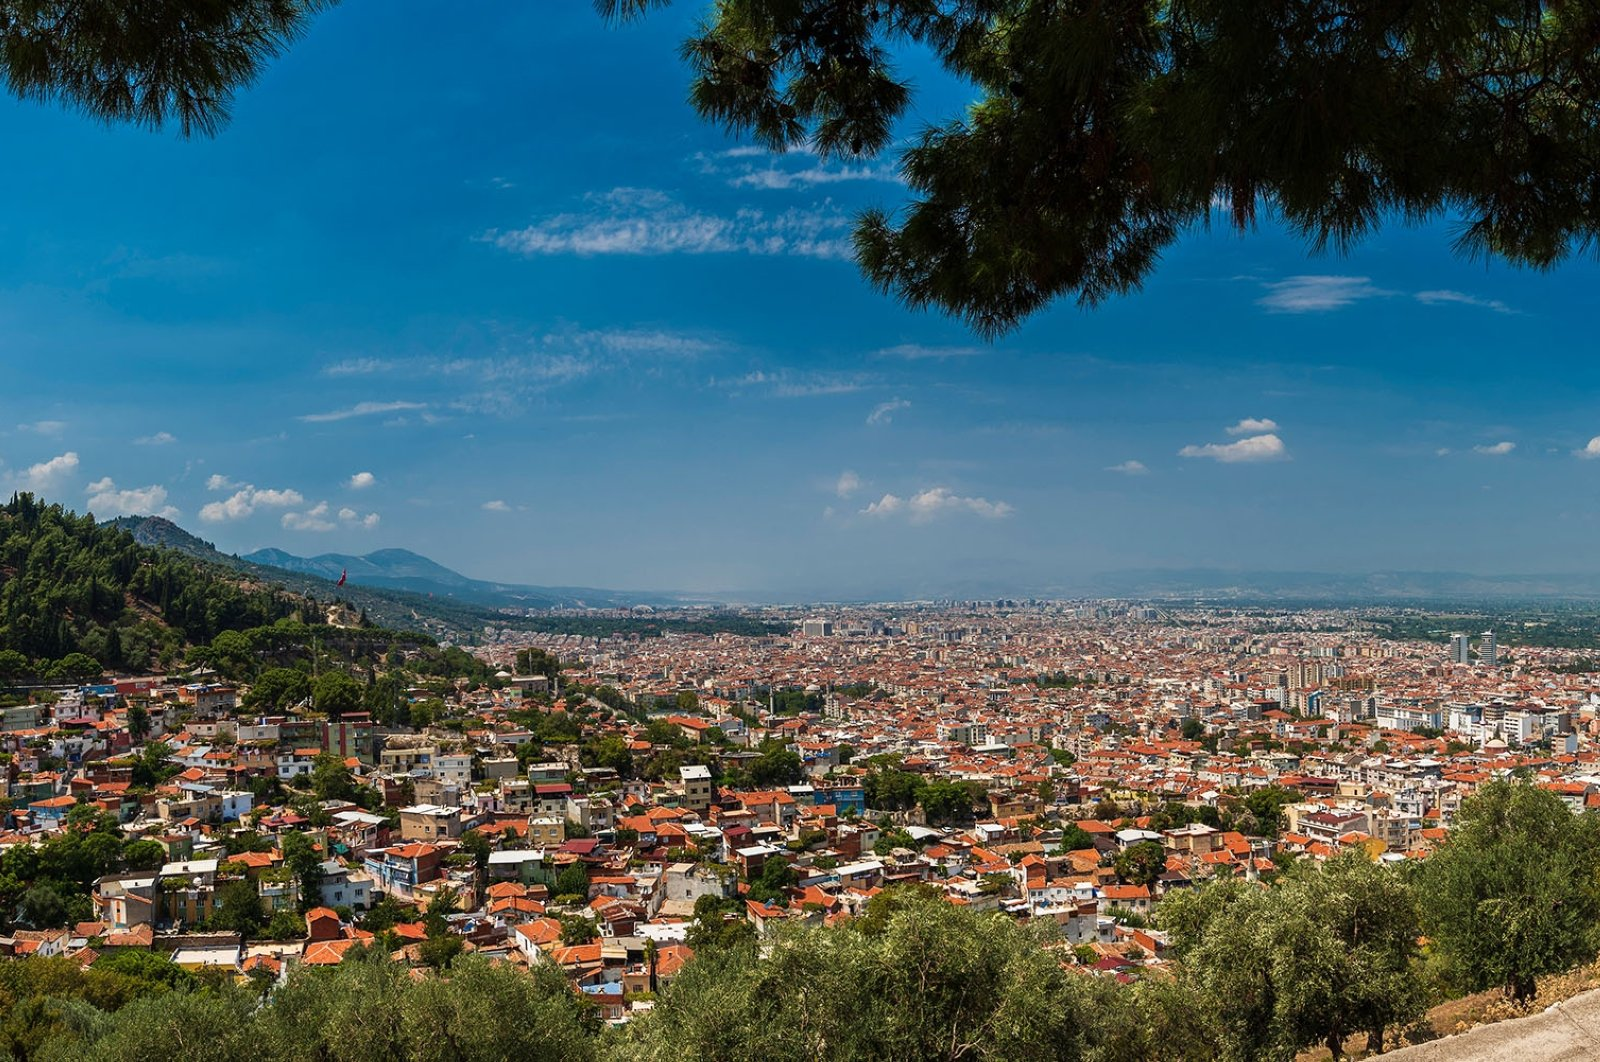 Manisa is a center of culture and history in western Turkey. (Shutterstock Photo)